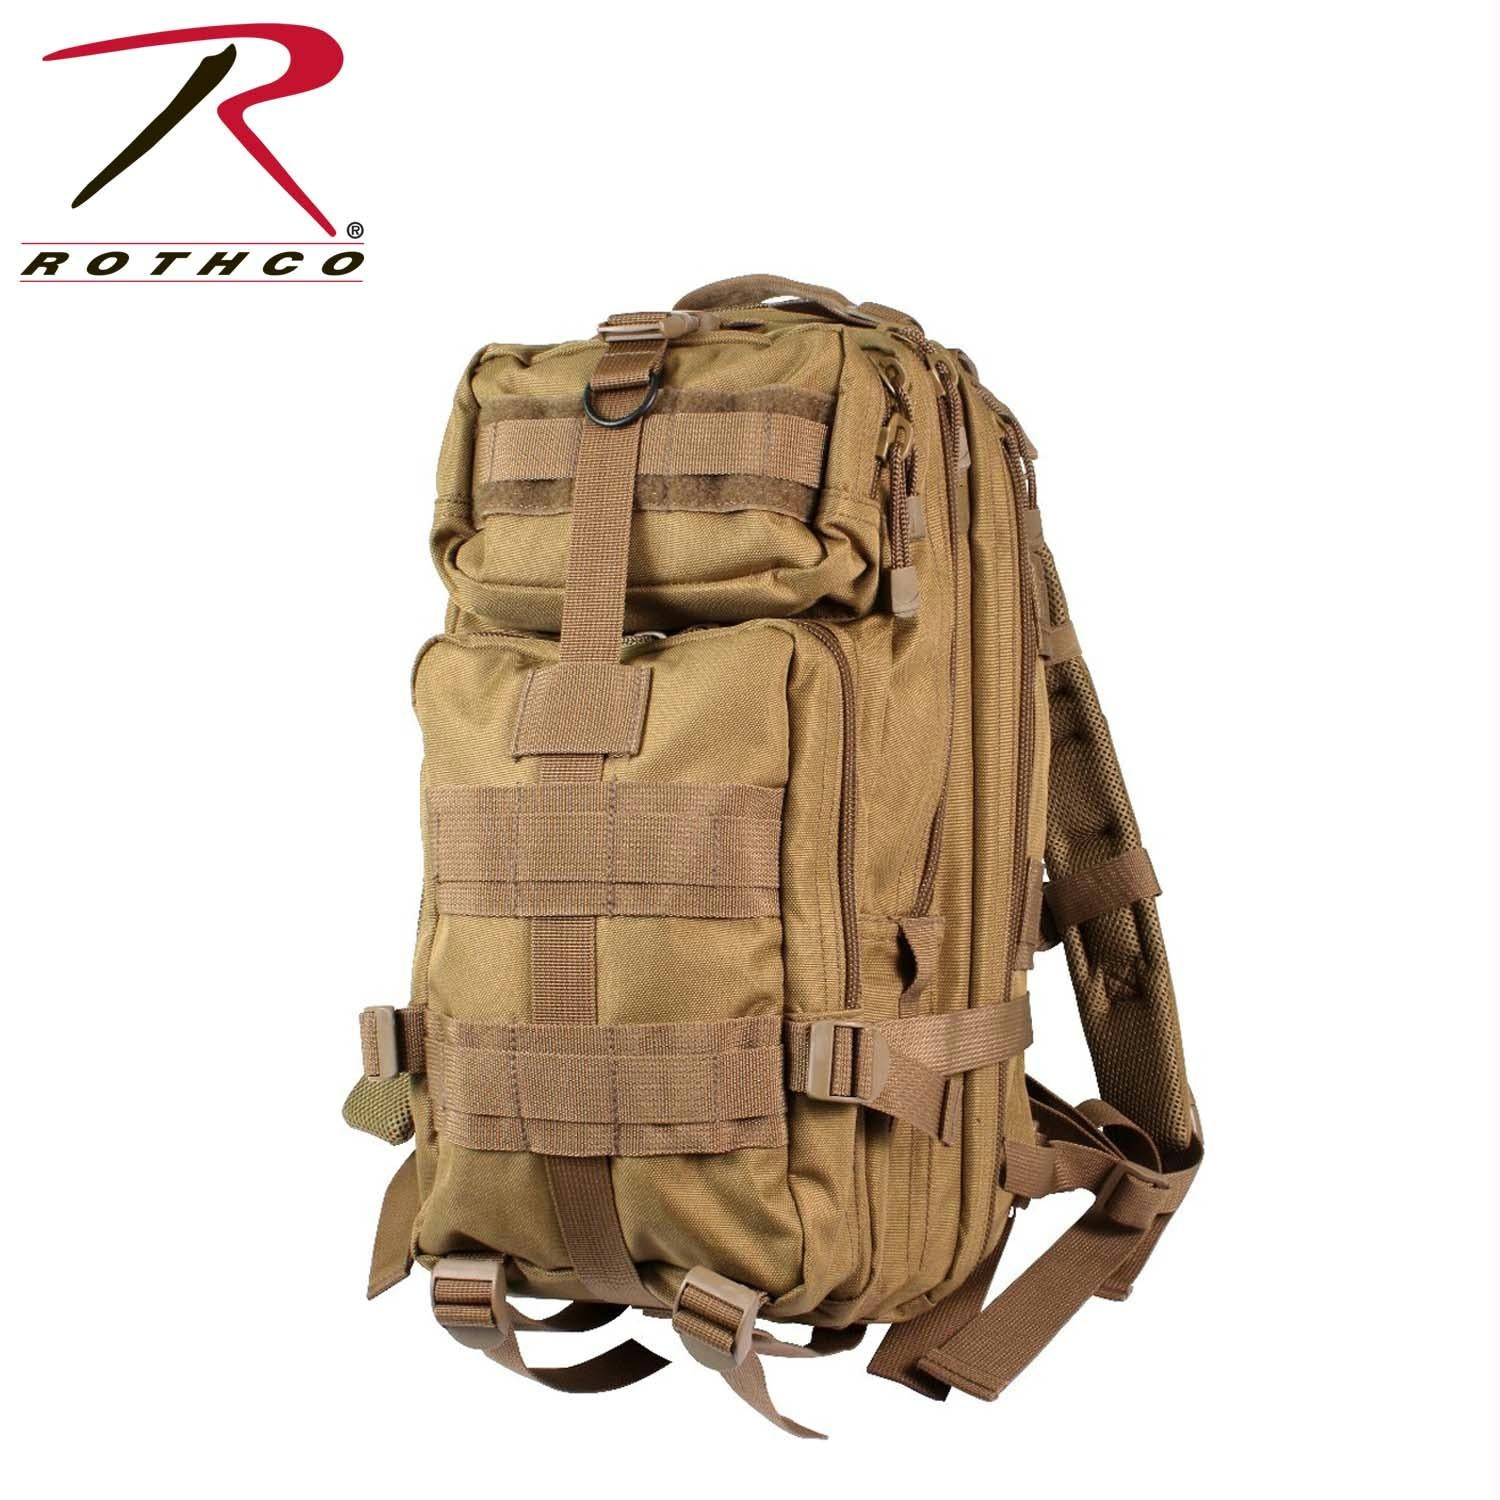 Rothco Medium Transport Pack - Coyote Brown